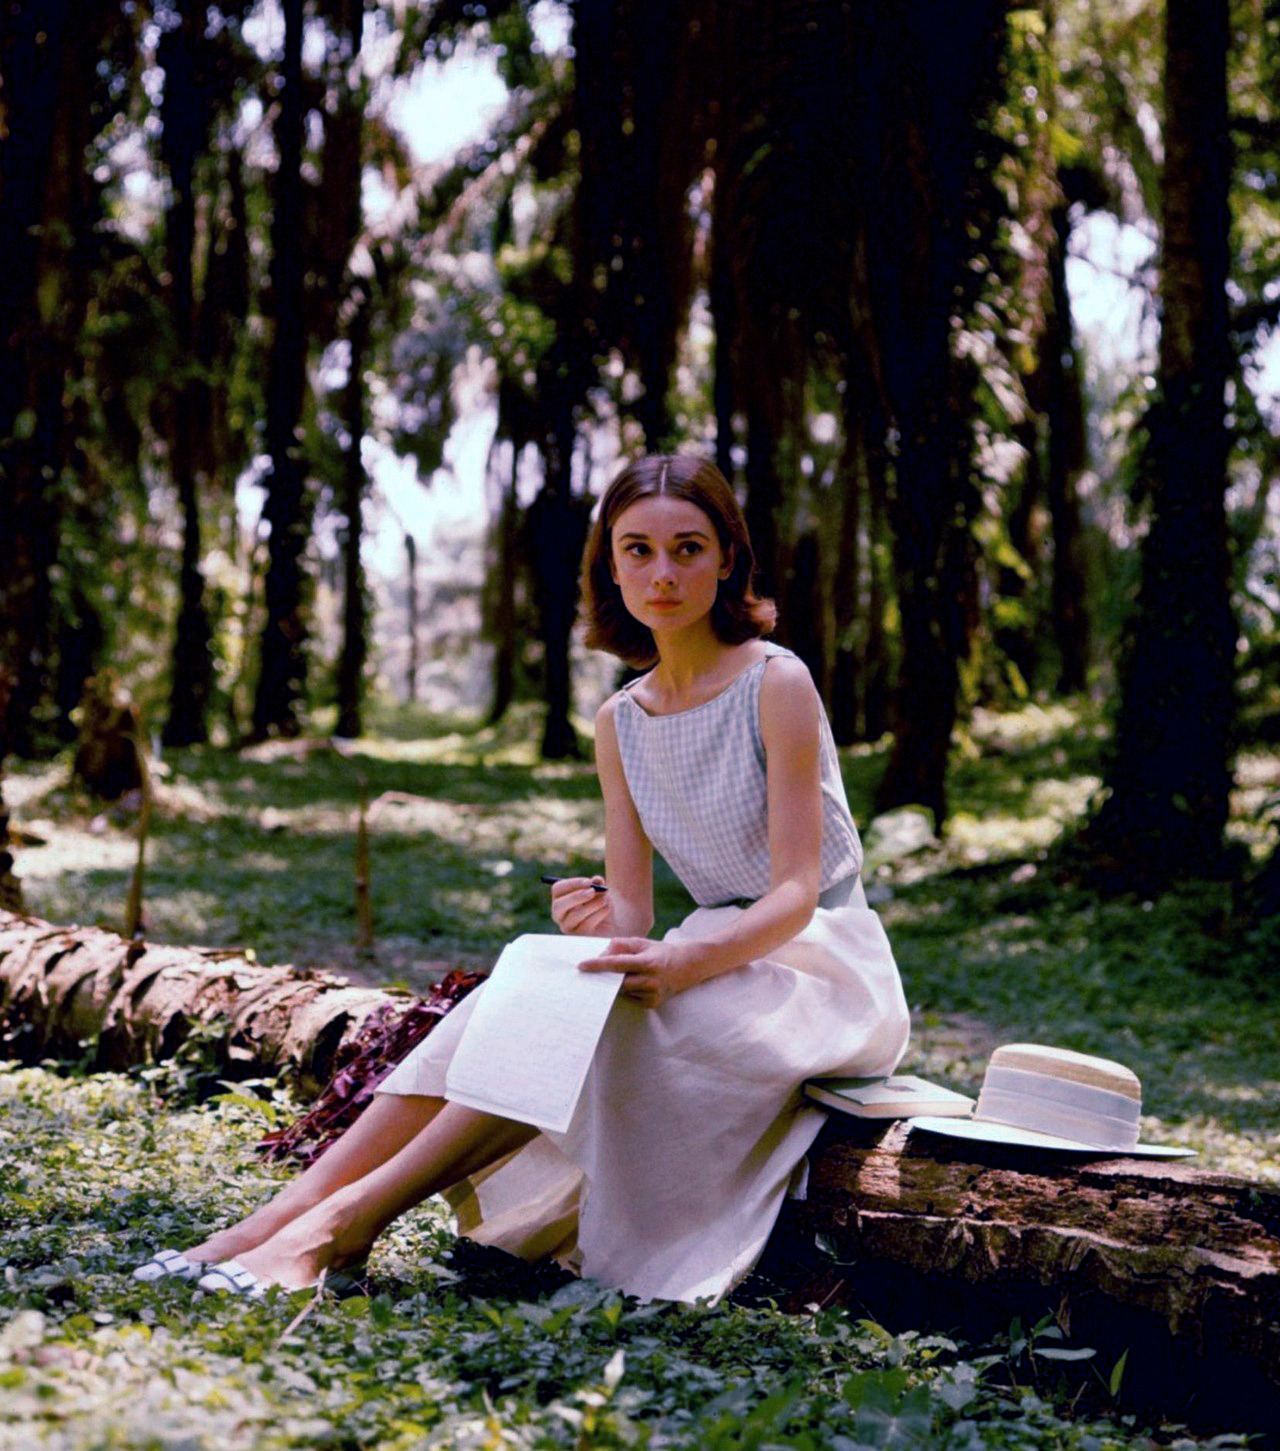 Audrey Hepburn in the Belgian Congo, 1958.  Special appearance by Audrey's yorkshire terrier aptly named Famous. Photographs by Leo Fuchs.